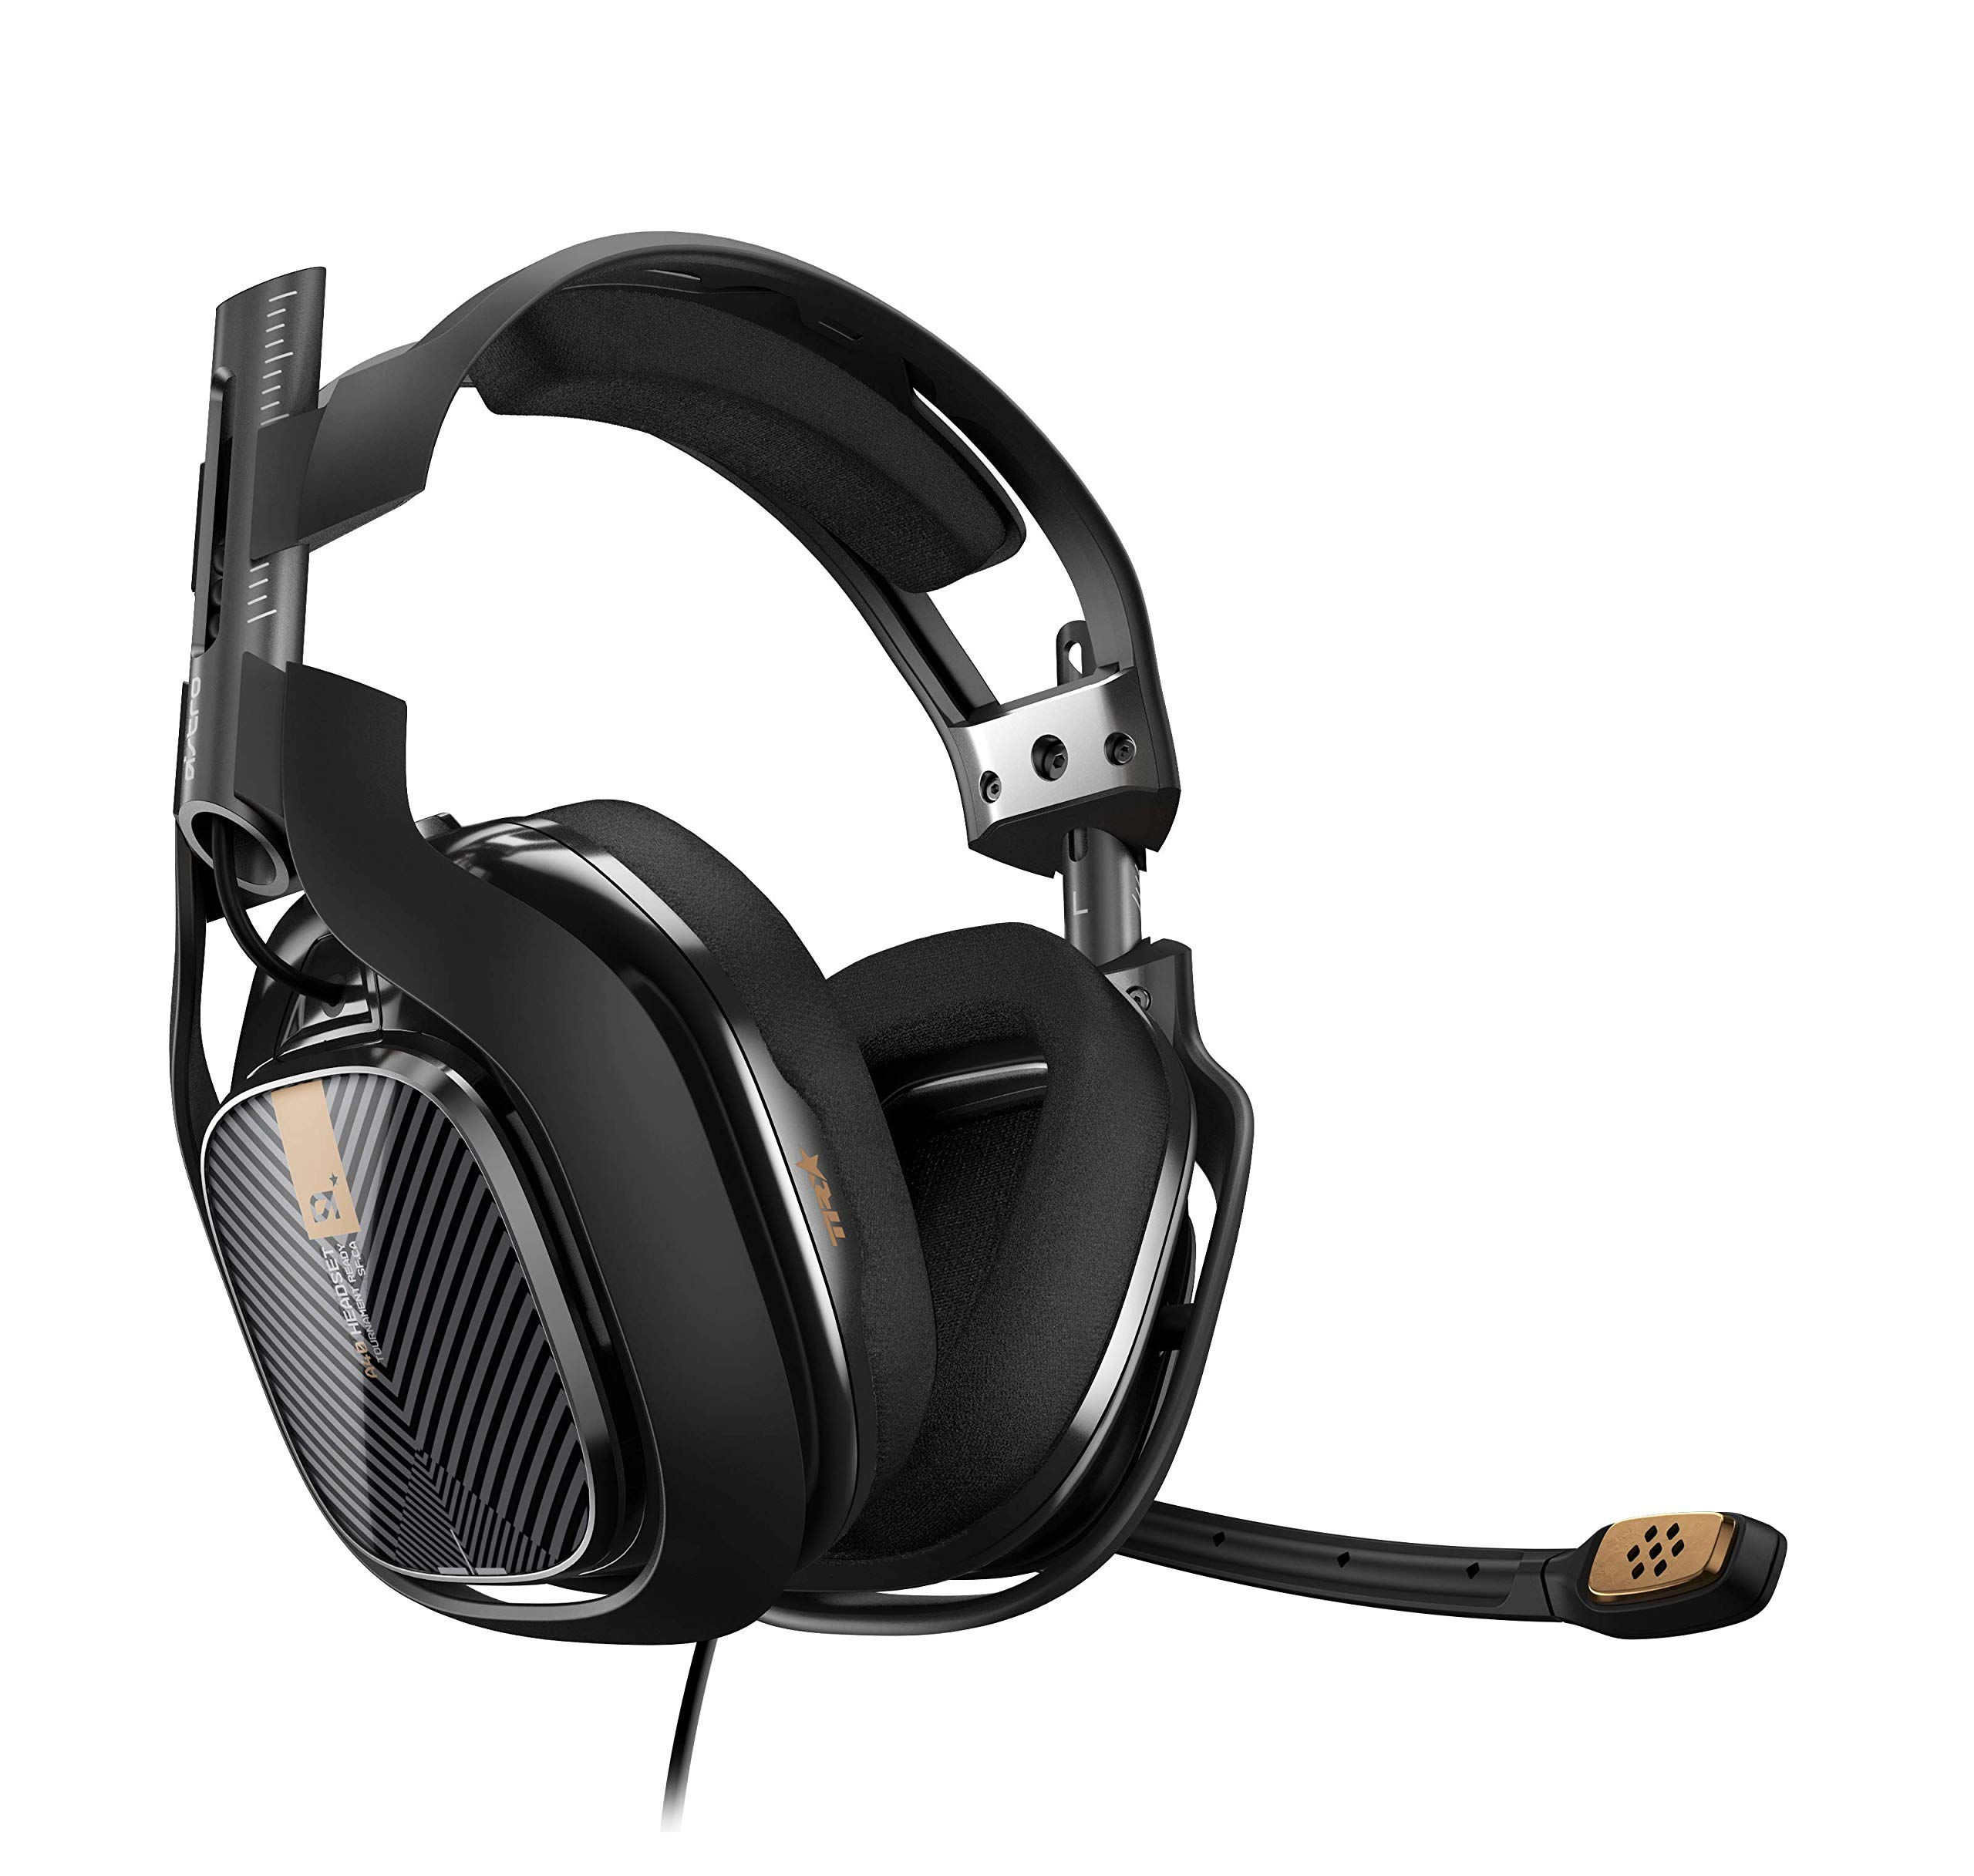 ASTRO Gaming A40 TR Gaming Headset for PC, Mac - Black (2017 Model) by ASTRO Gaming